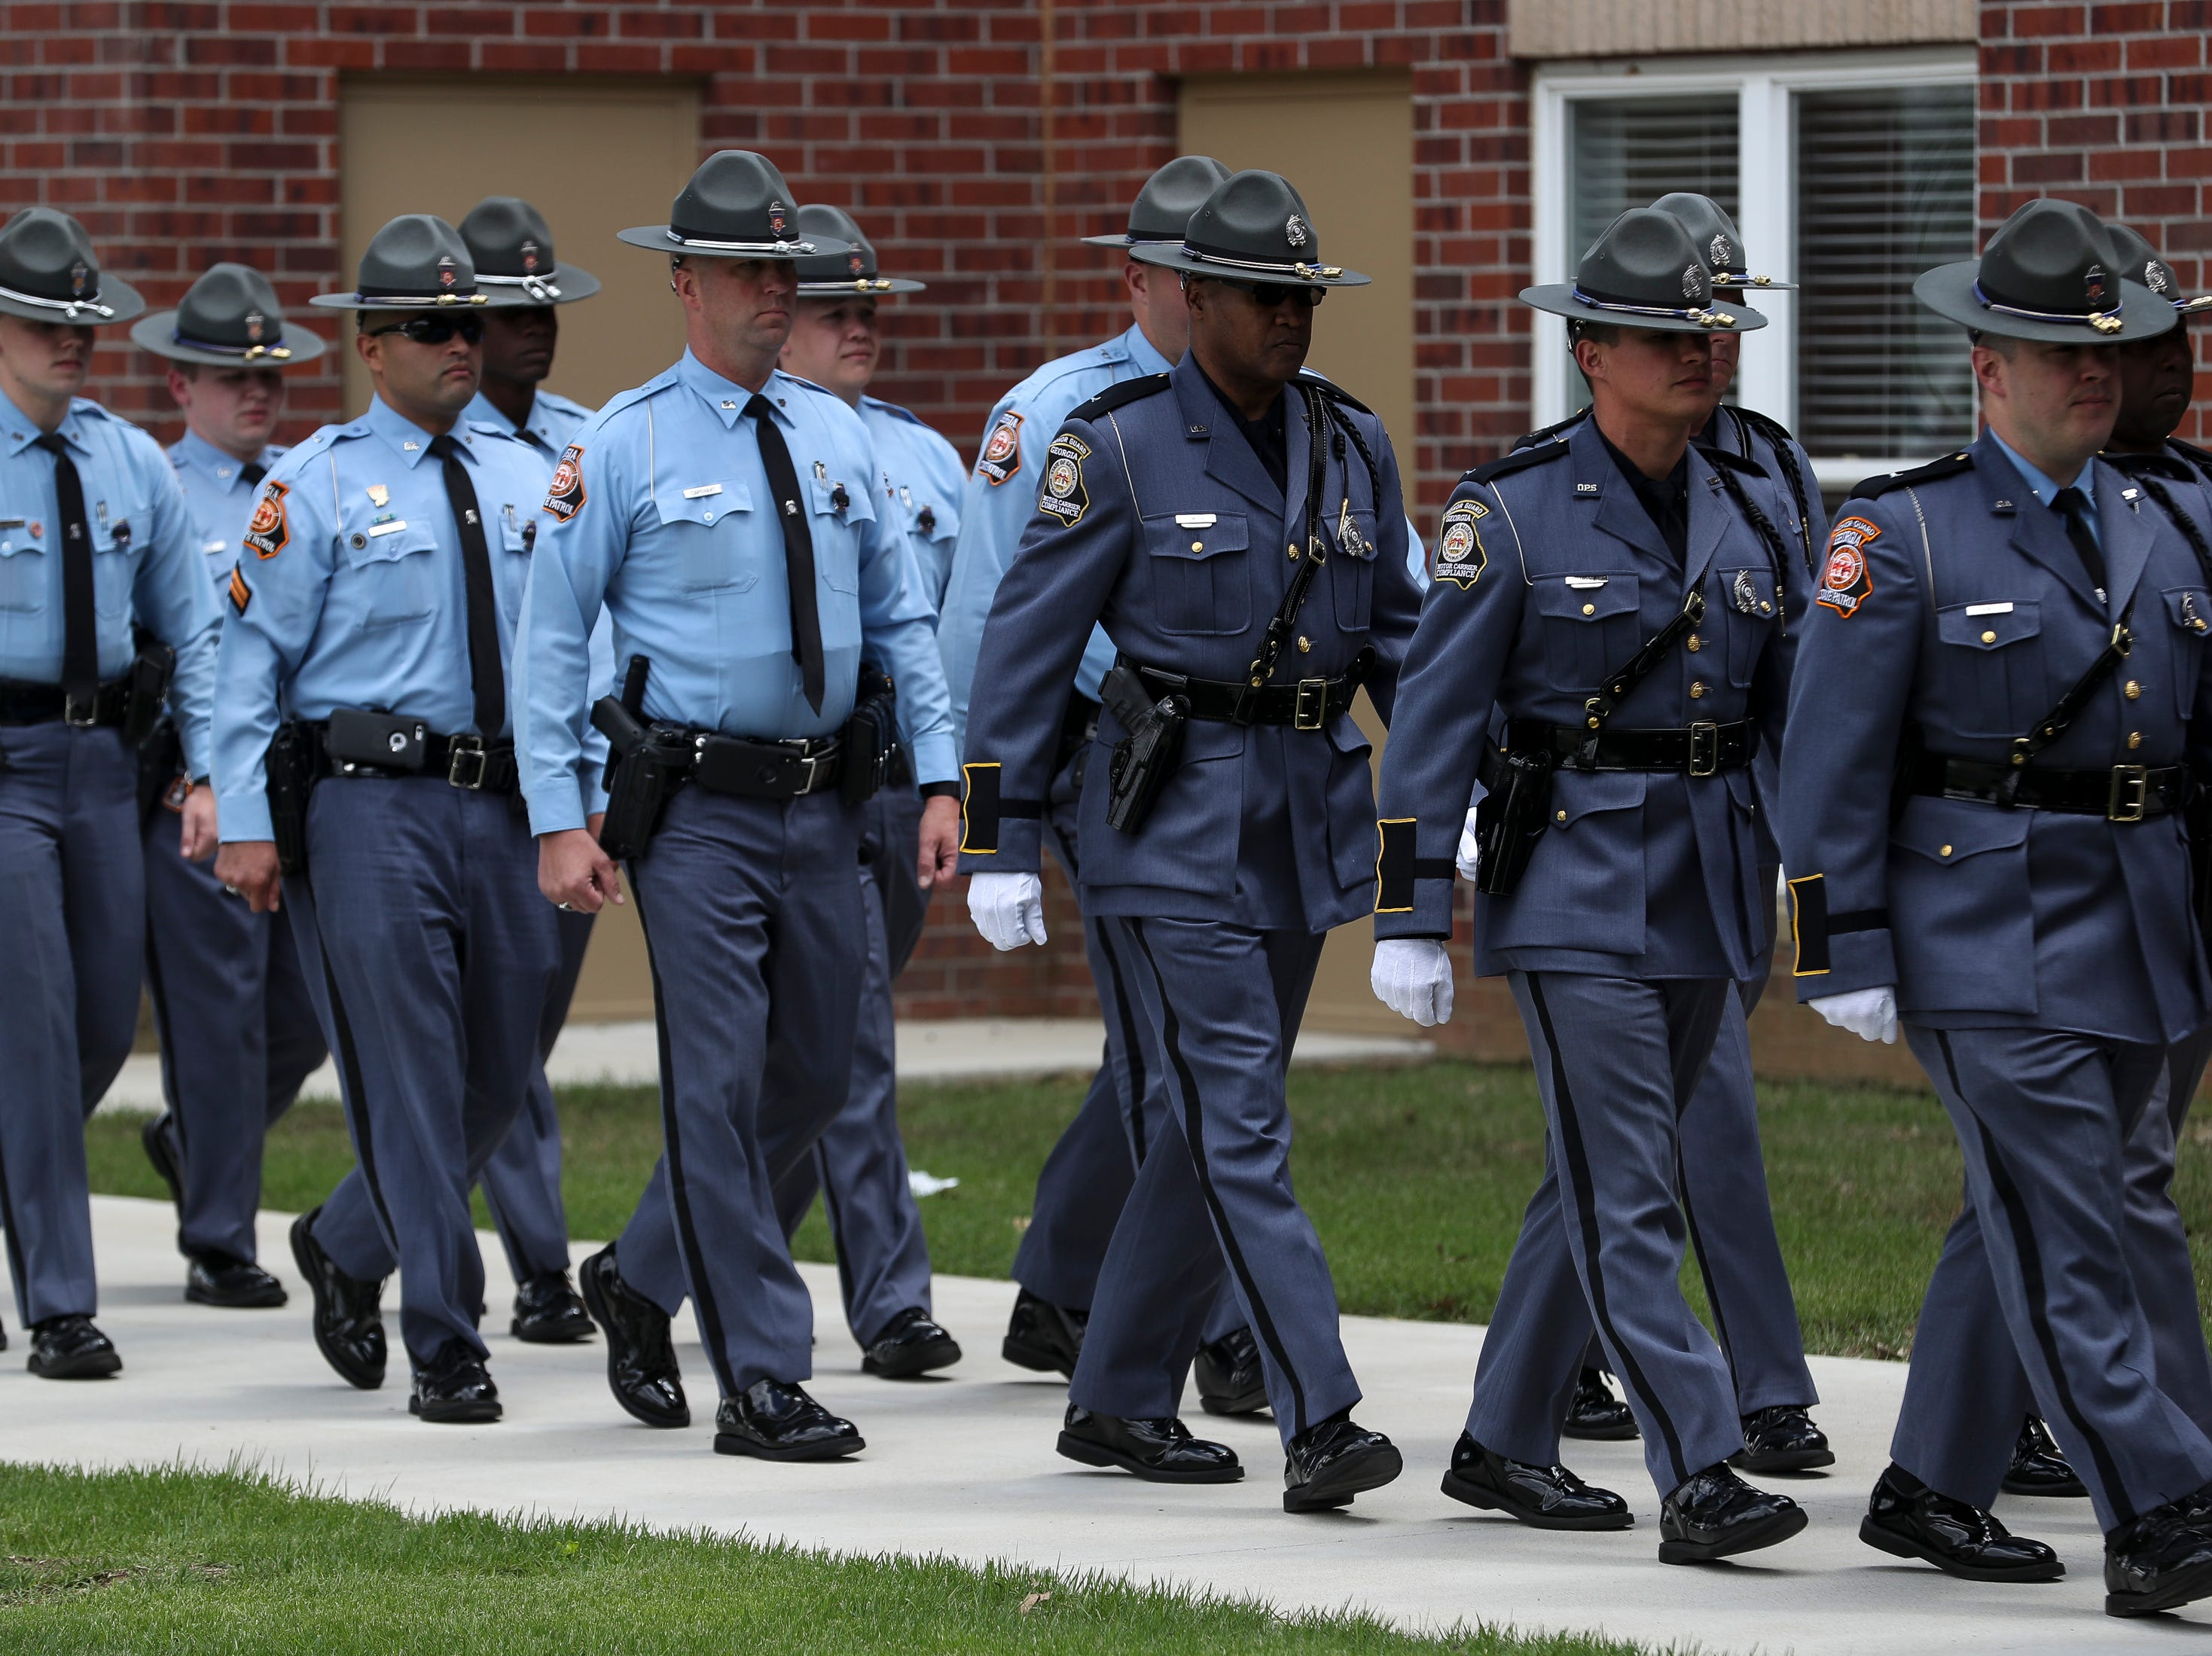 before the funeral service for Tennessee State Trooper Matthew Gatti at West Jackson Baptist Church in Jackson, Tenn., Monday, May 13, 2019. Gatti died in the line of duty in an accident while responding to a car fire on I-40 in Madison County on May 6.